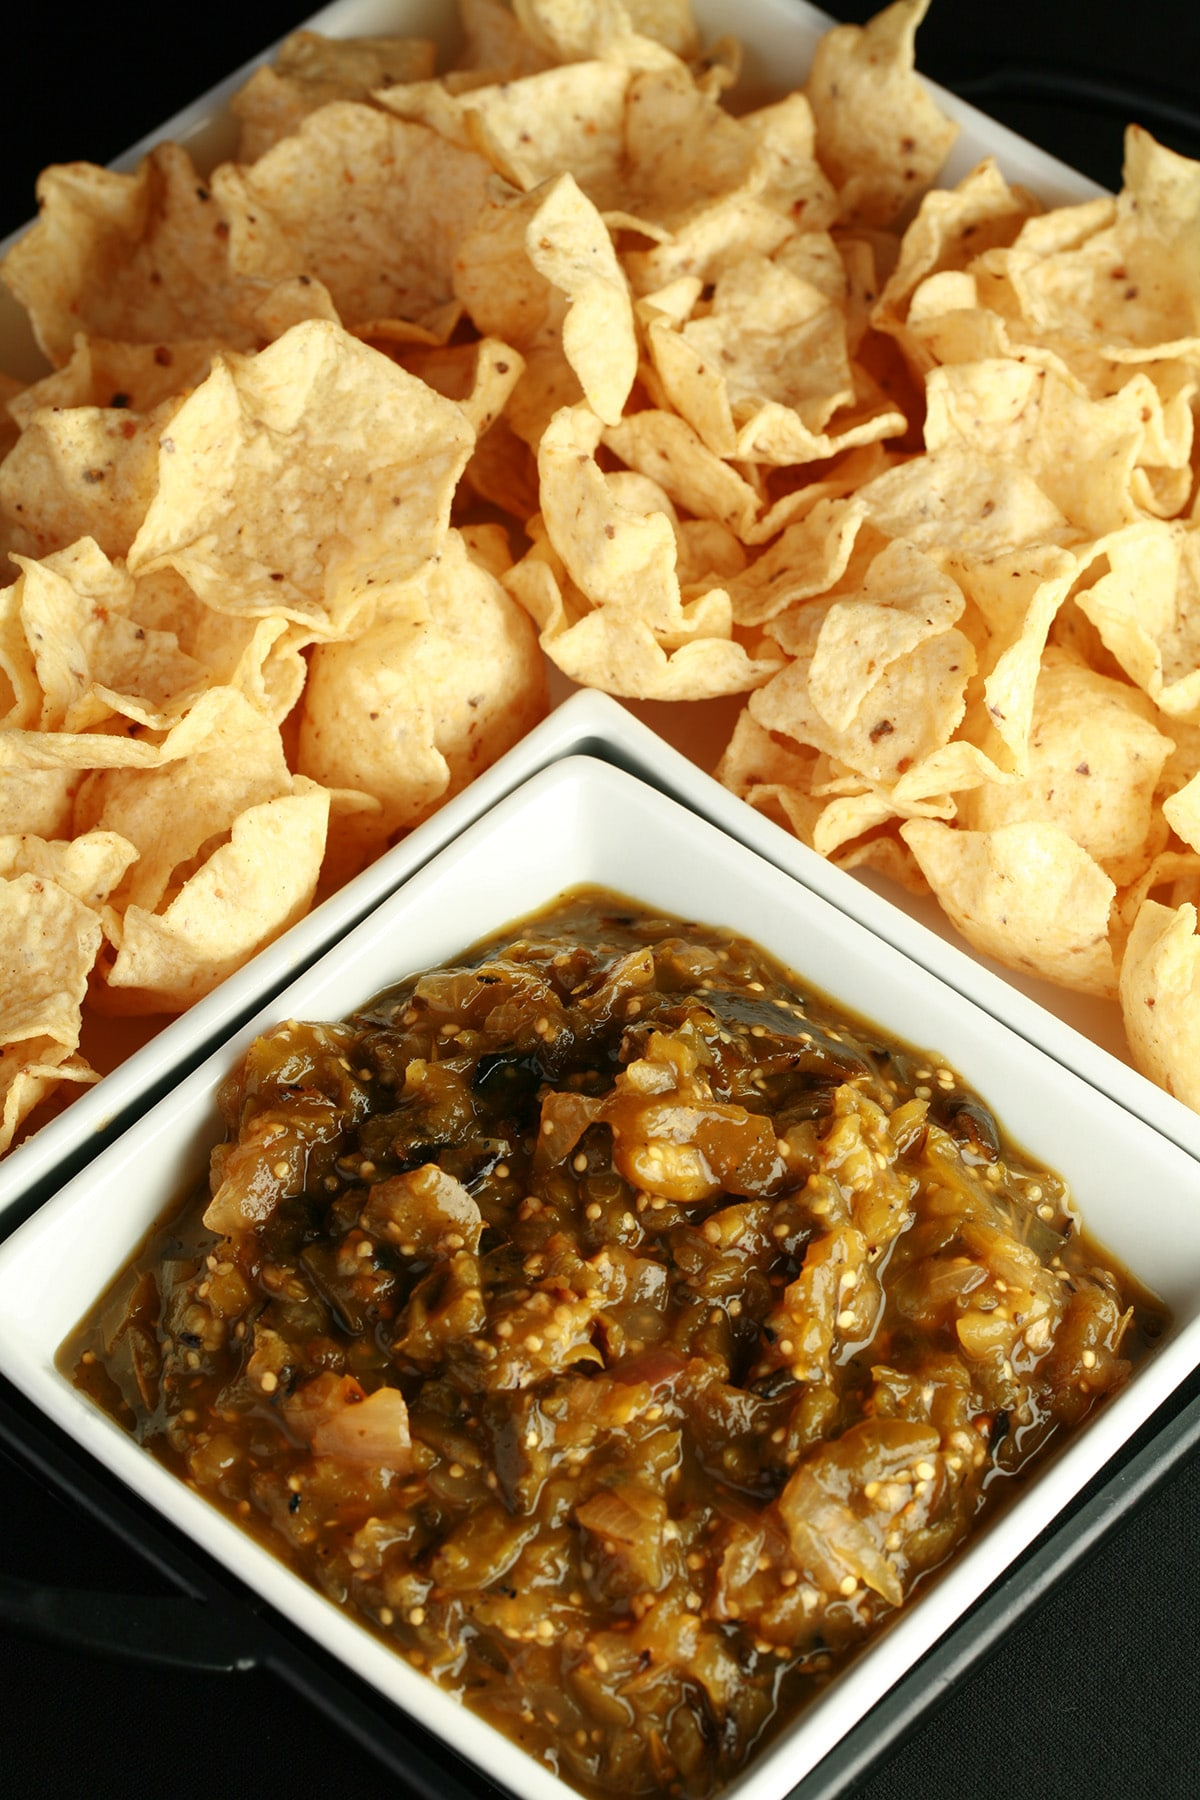 A large square bowl of roasted salsa verde, surrounded by white corn chips.